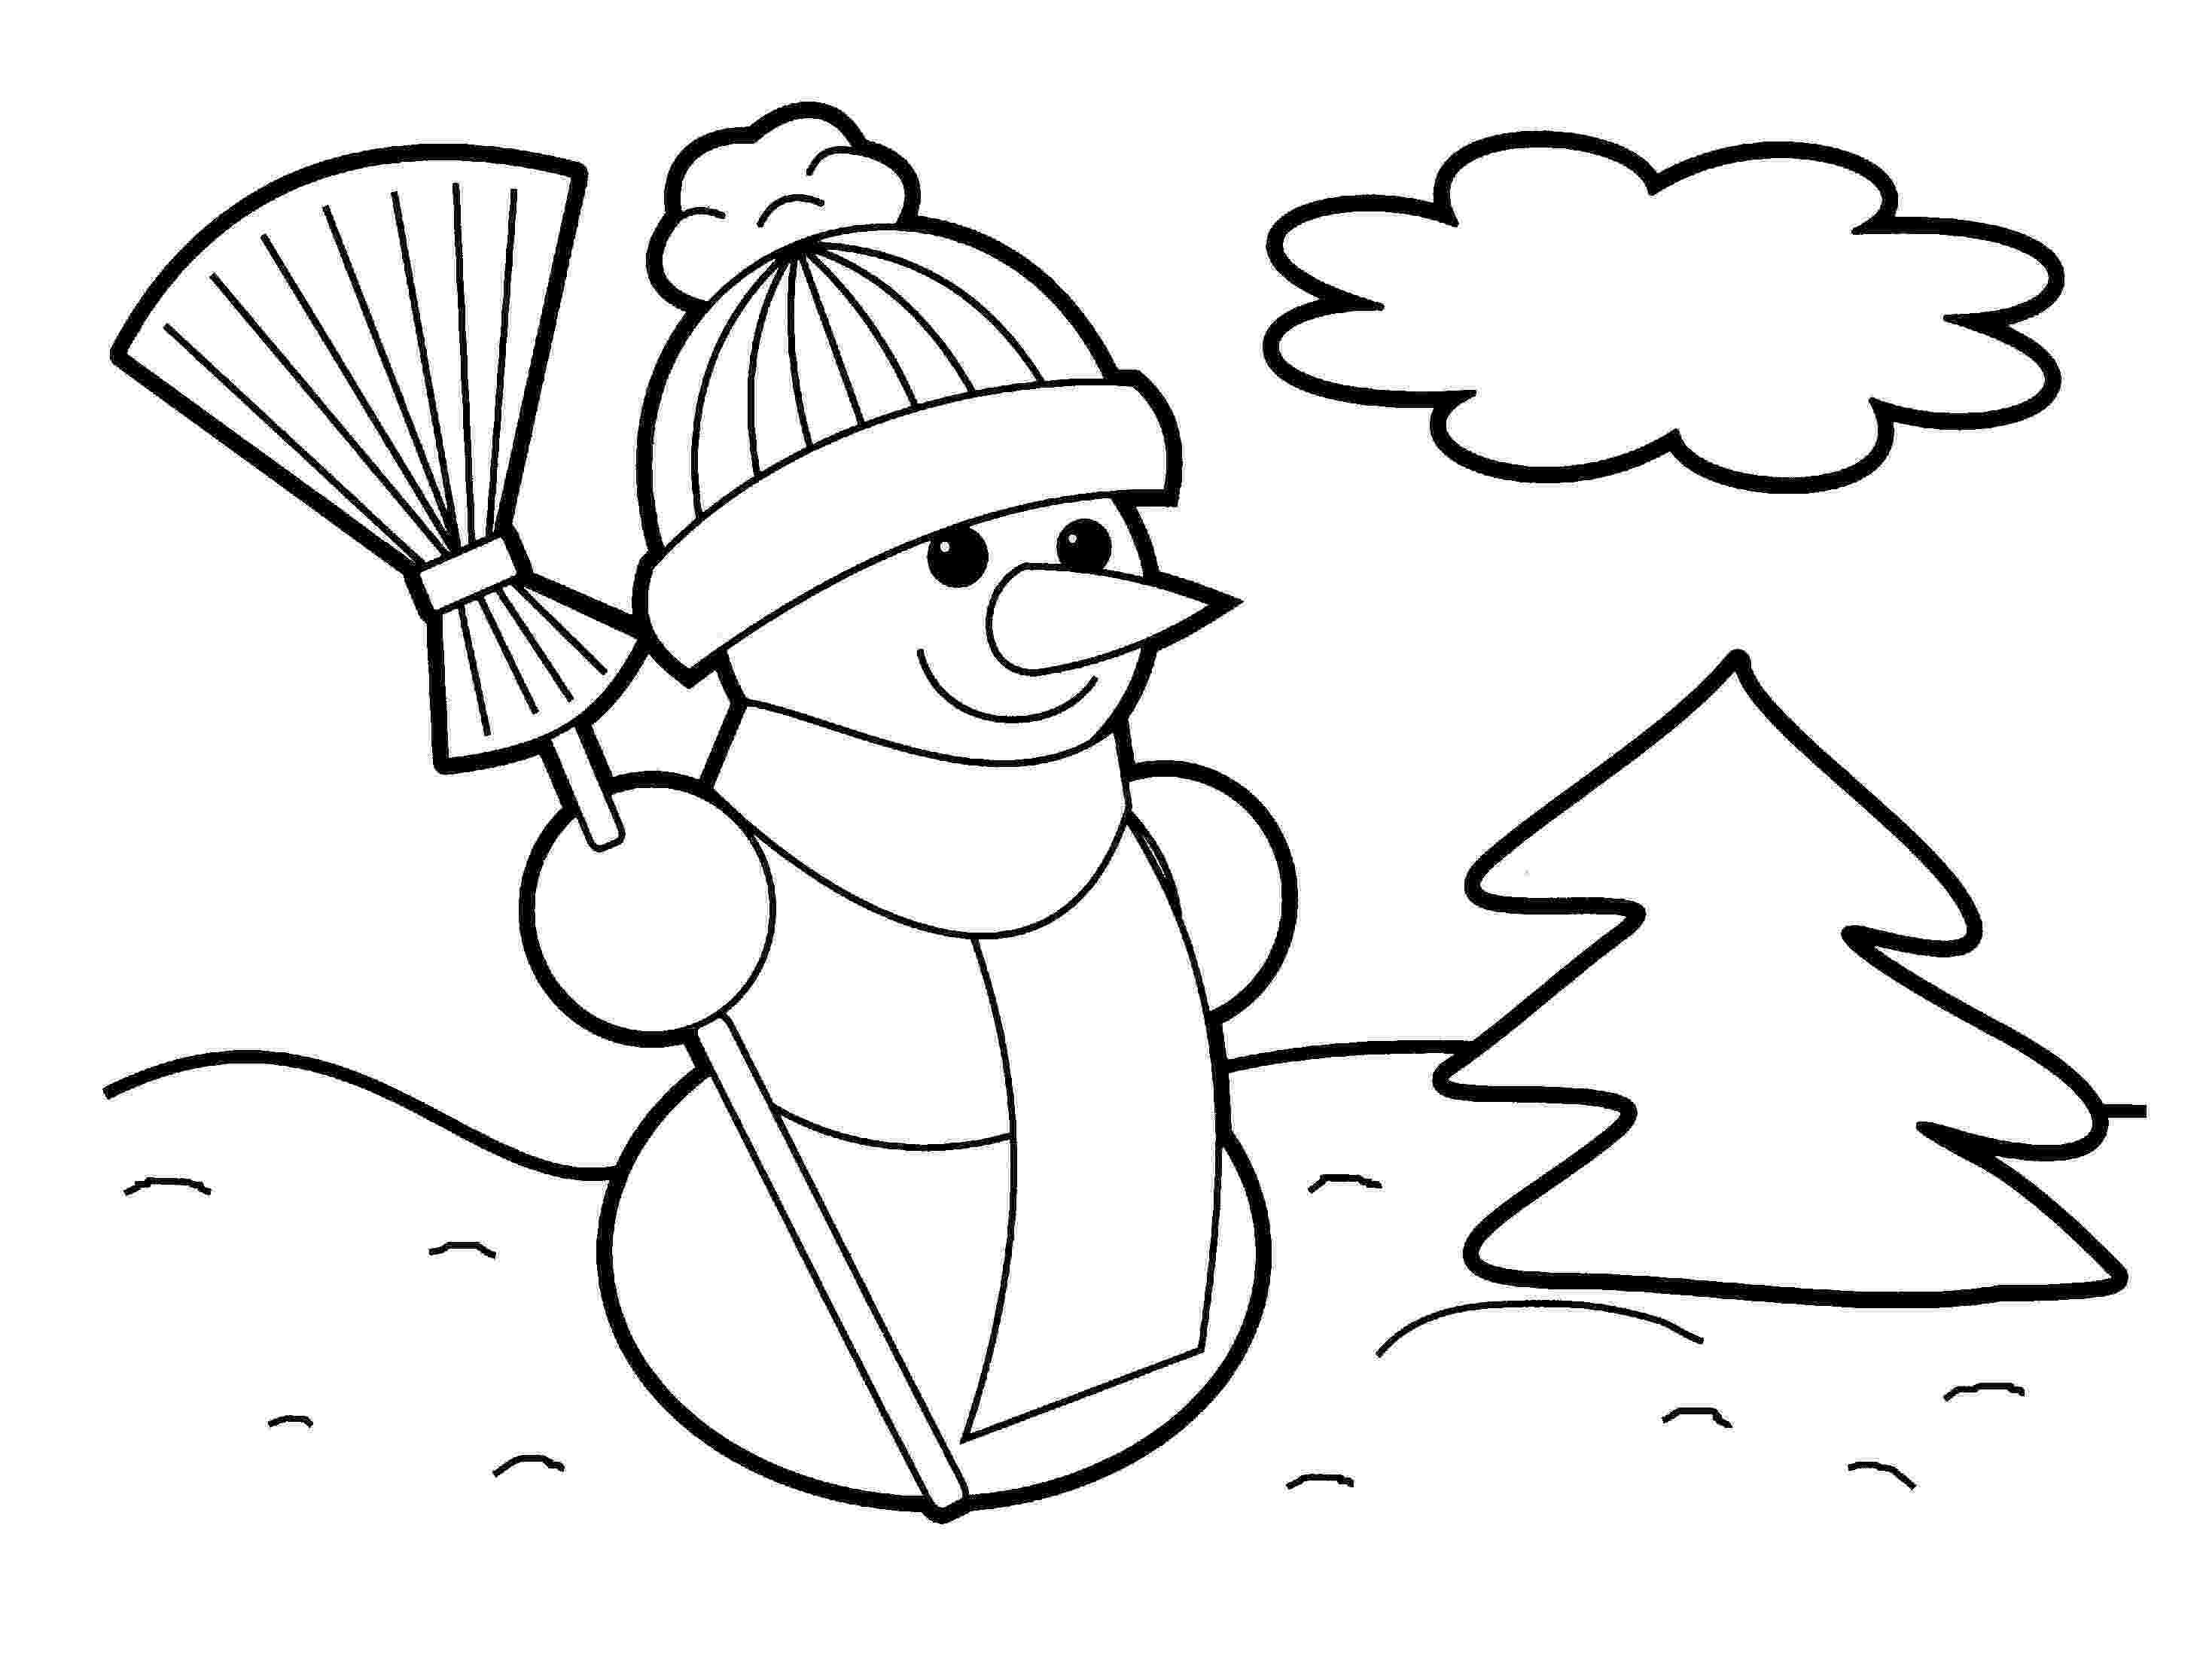 christmas coloring pages to print free free christmas coloring pages to print wallpapers9 free coloring print christmas to pages